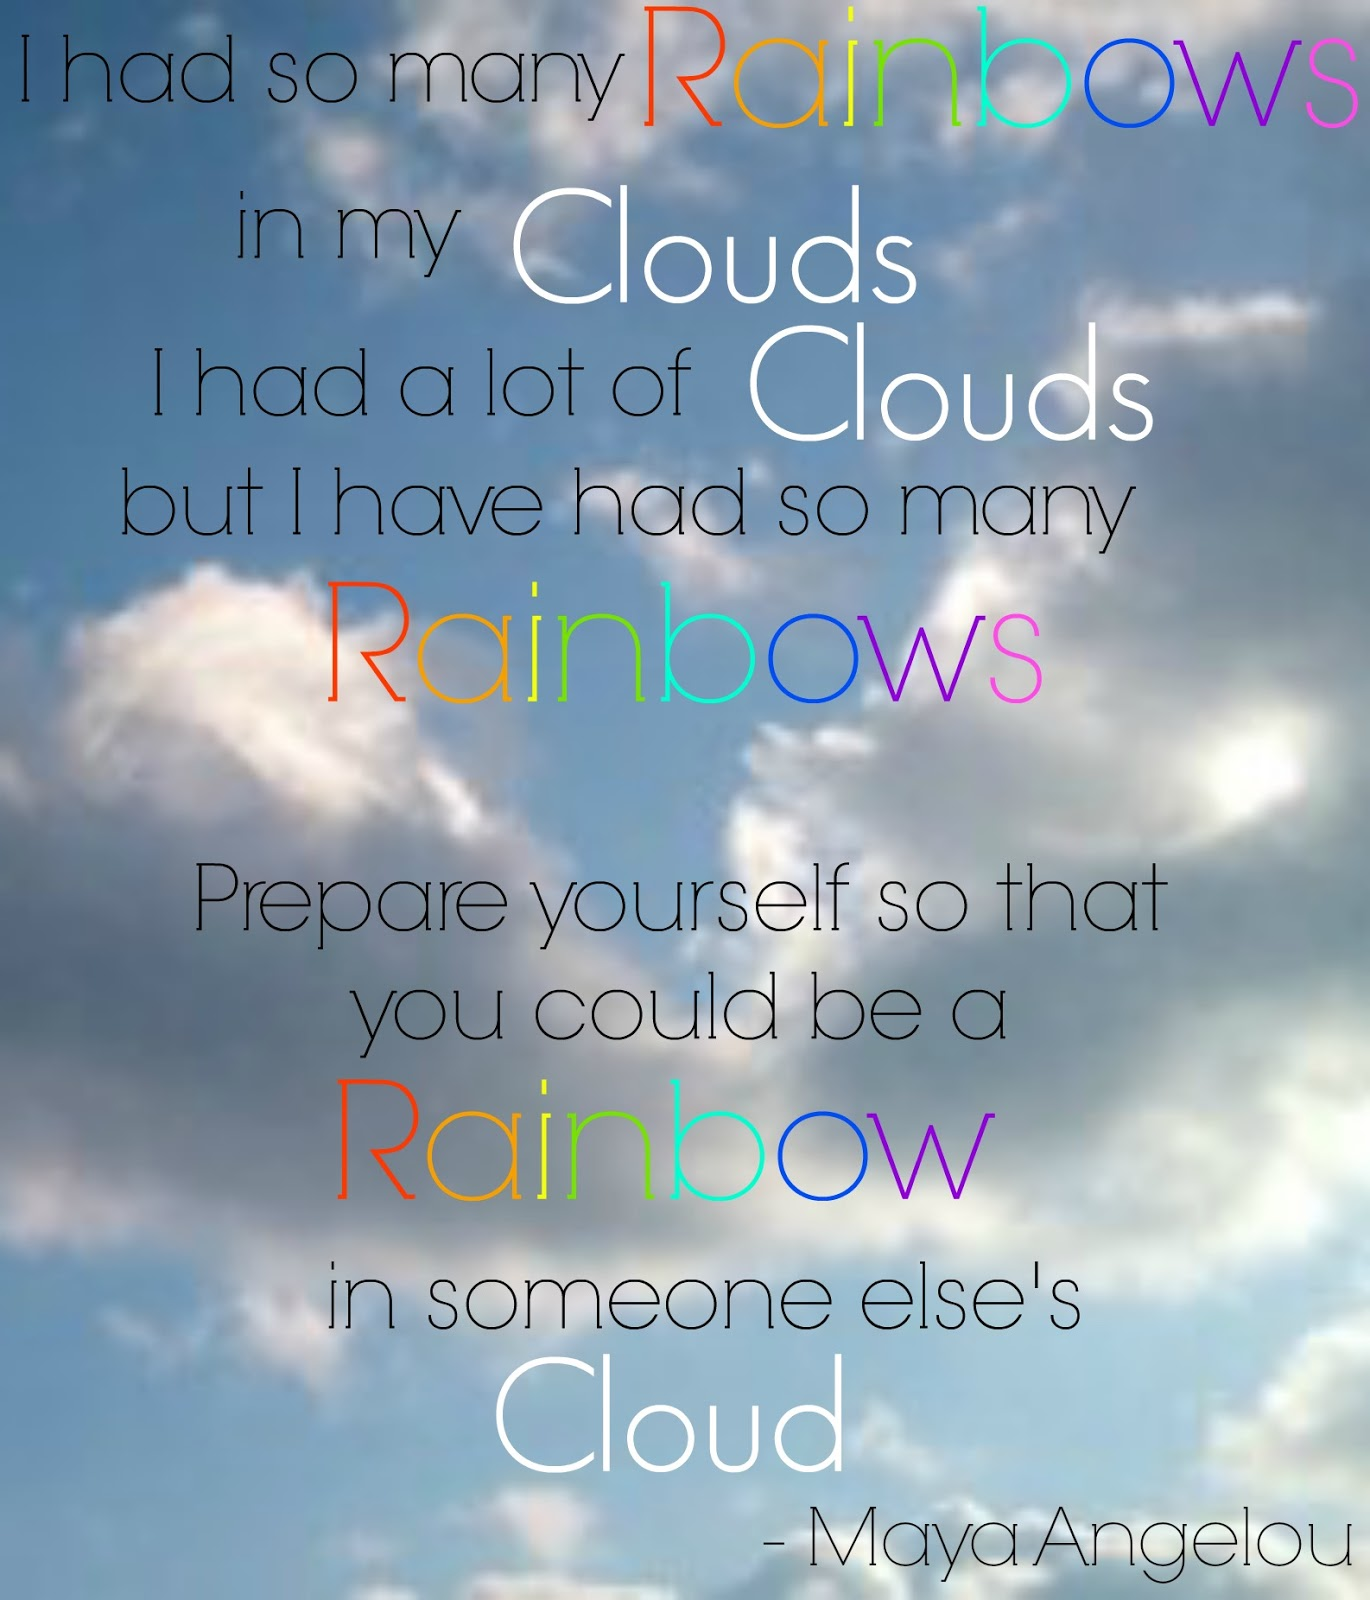 Cloud Quotes Mesmerizing Rainbow Quotes And Sayings  Suri's First Birthday  Pinterest . Inspiration